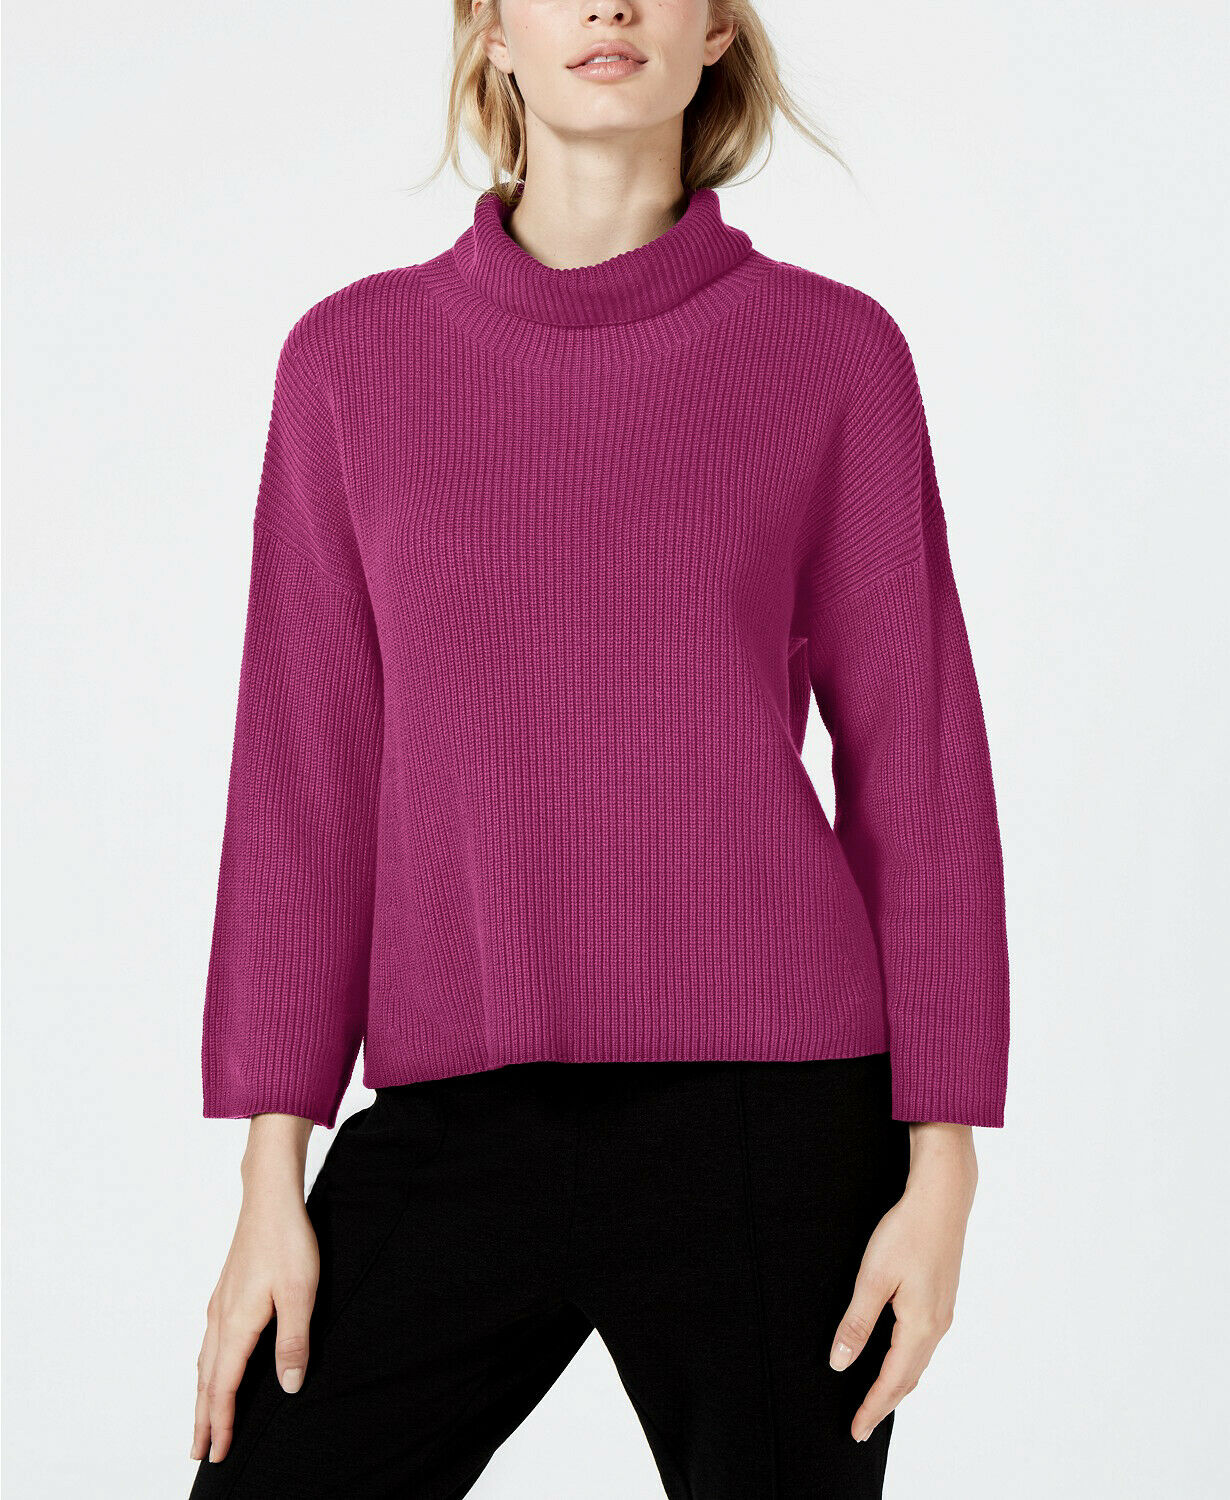 Nouve238 Eileen Fisher L Grand cerise doux en coton organique Sweater